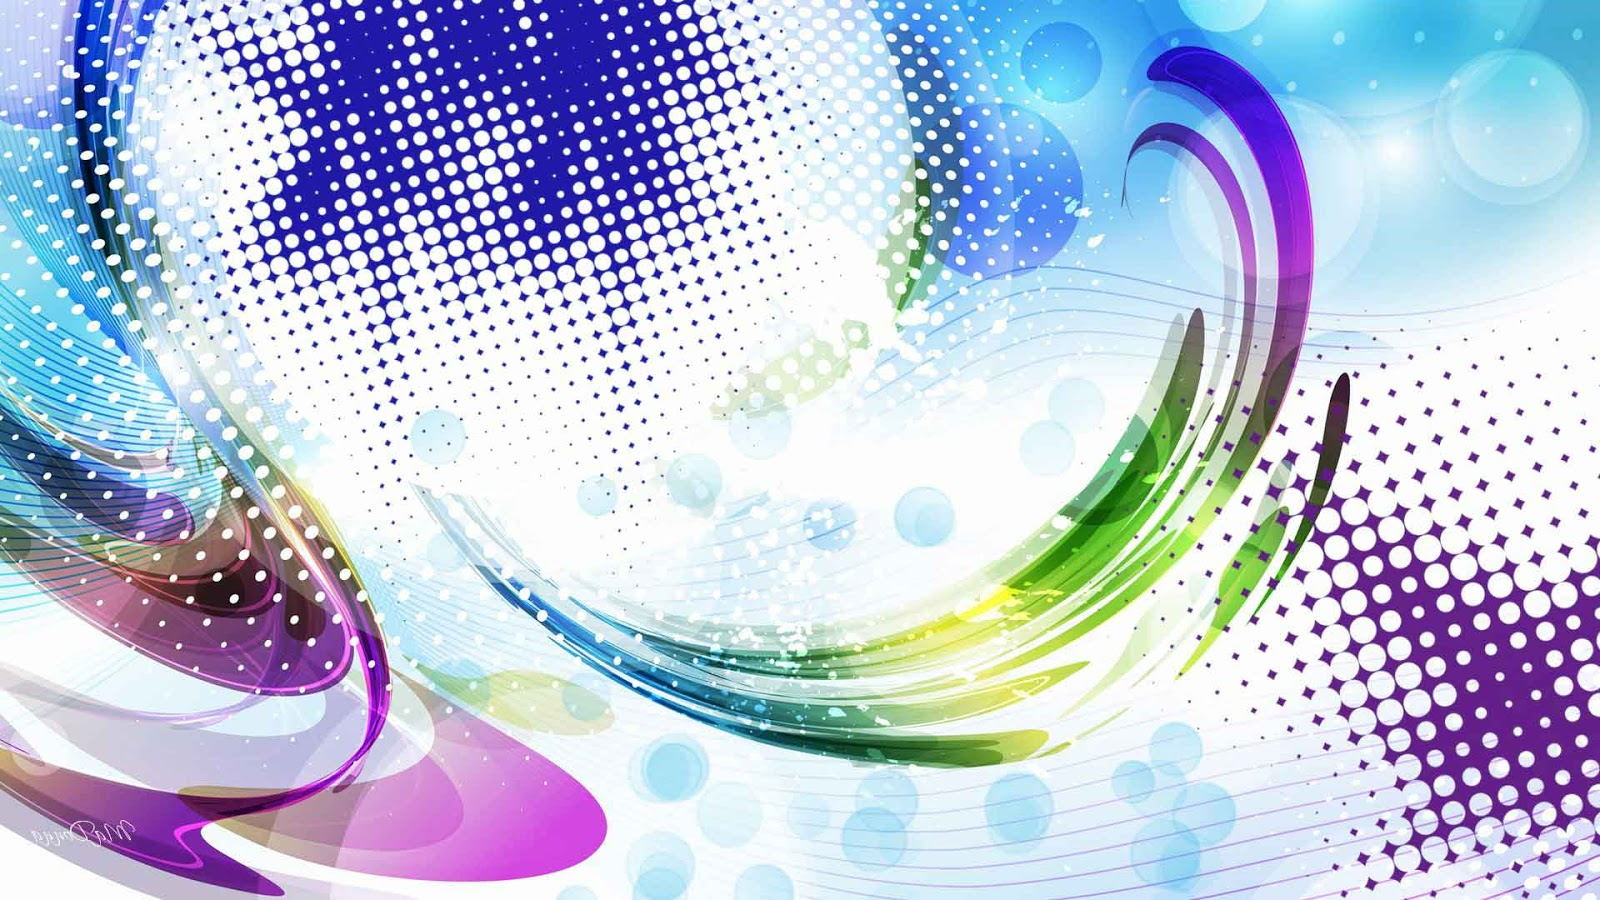 best hd wallpapers for ipad  Latest Abstract Backgrounds